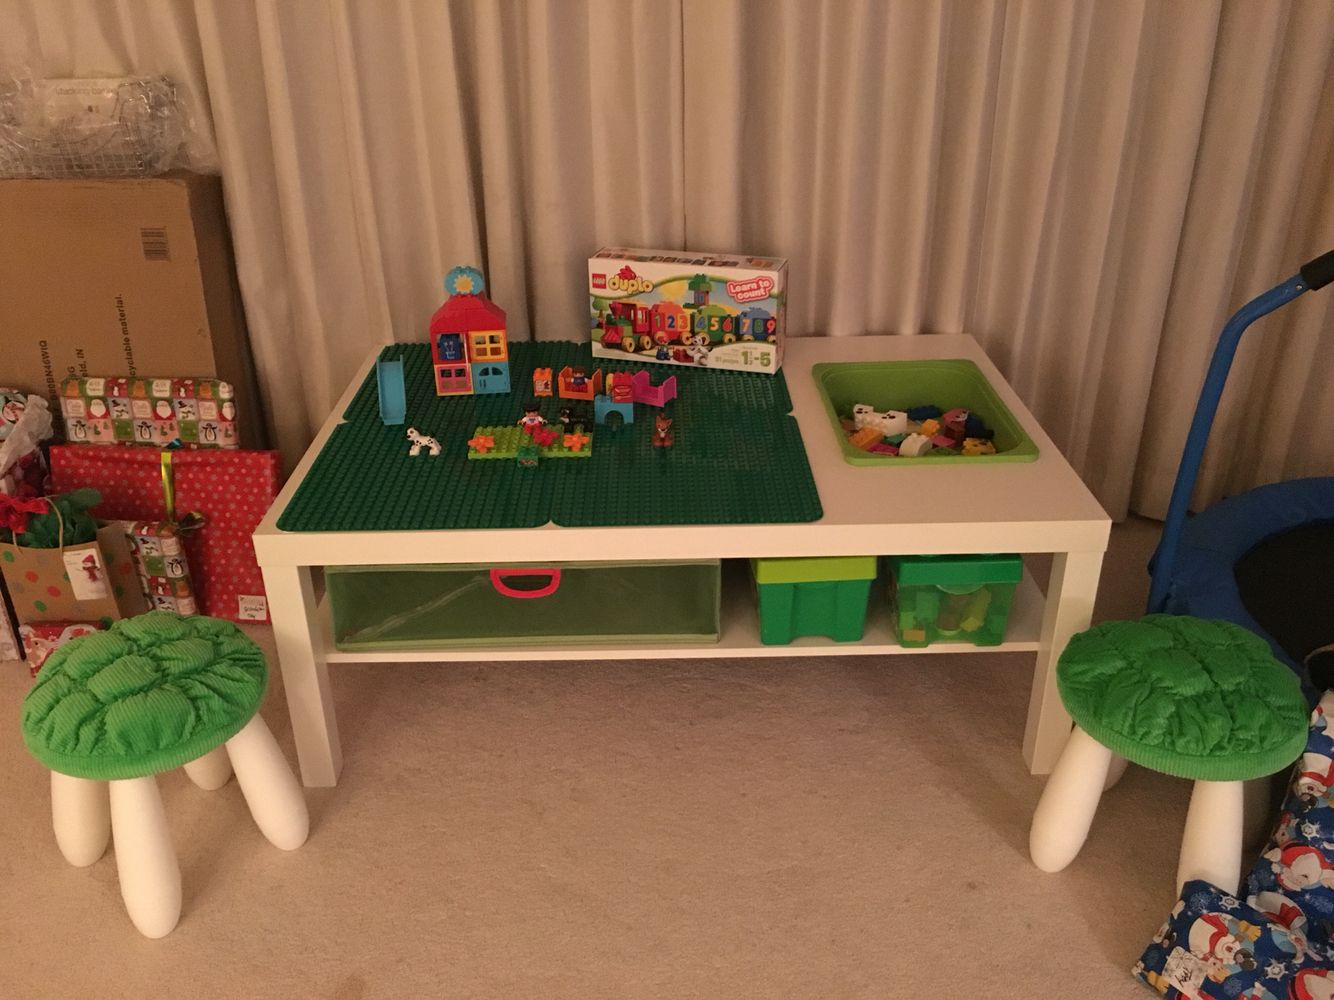 DIY Lego Table with Storage | Lego table ikea, Diy lego table and ...